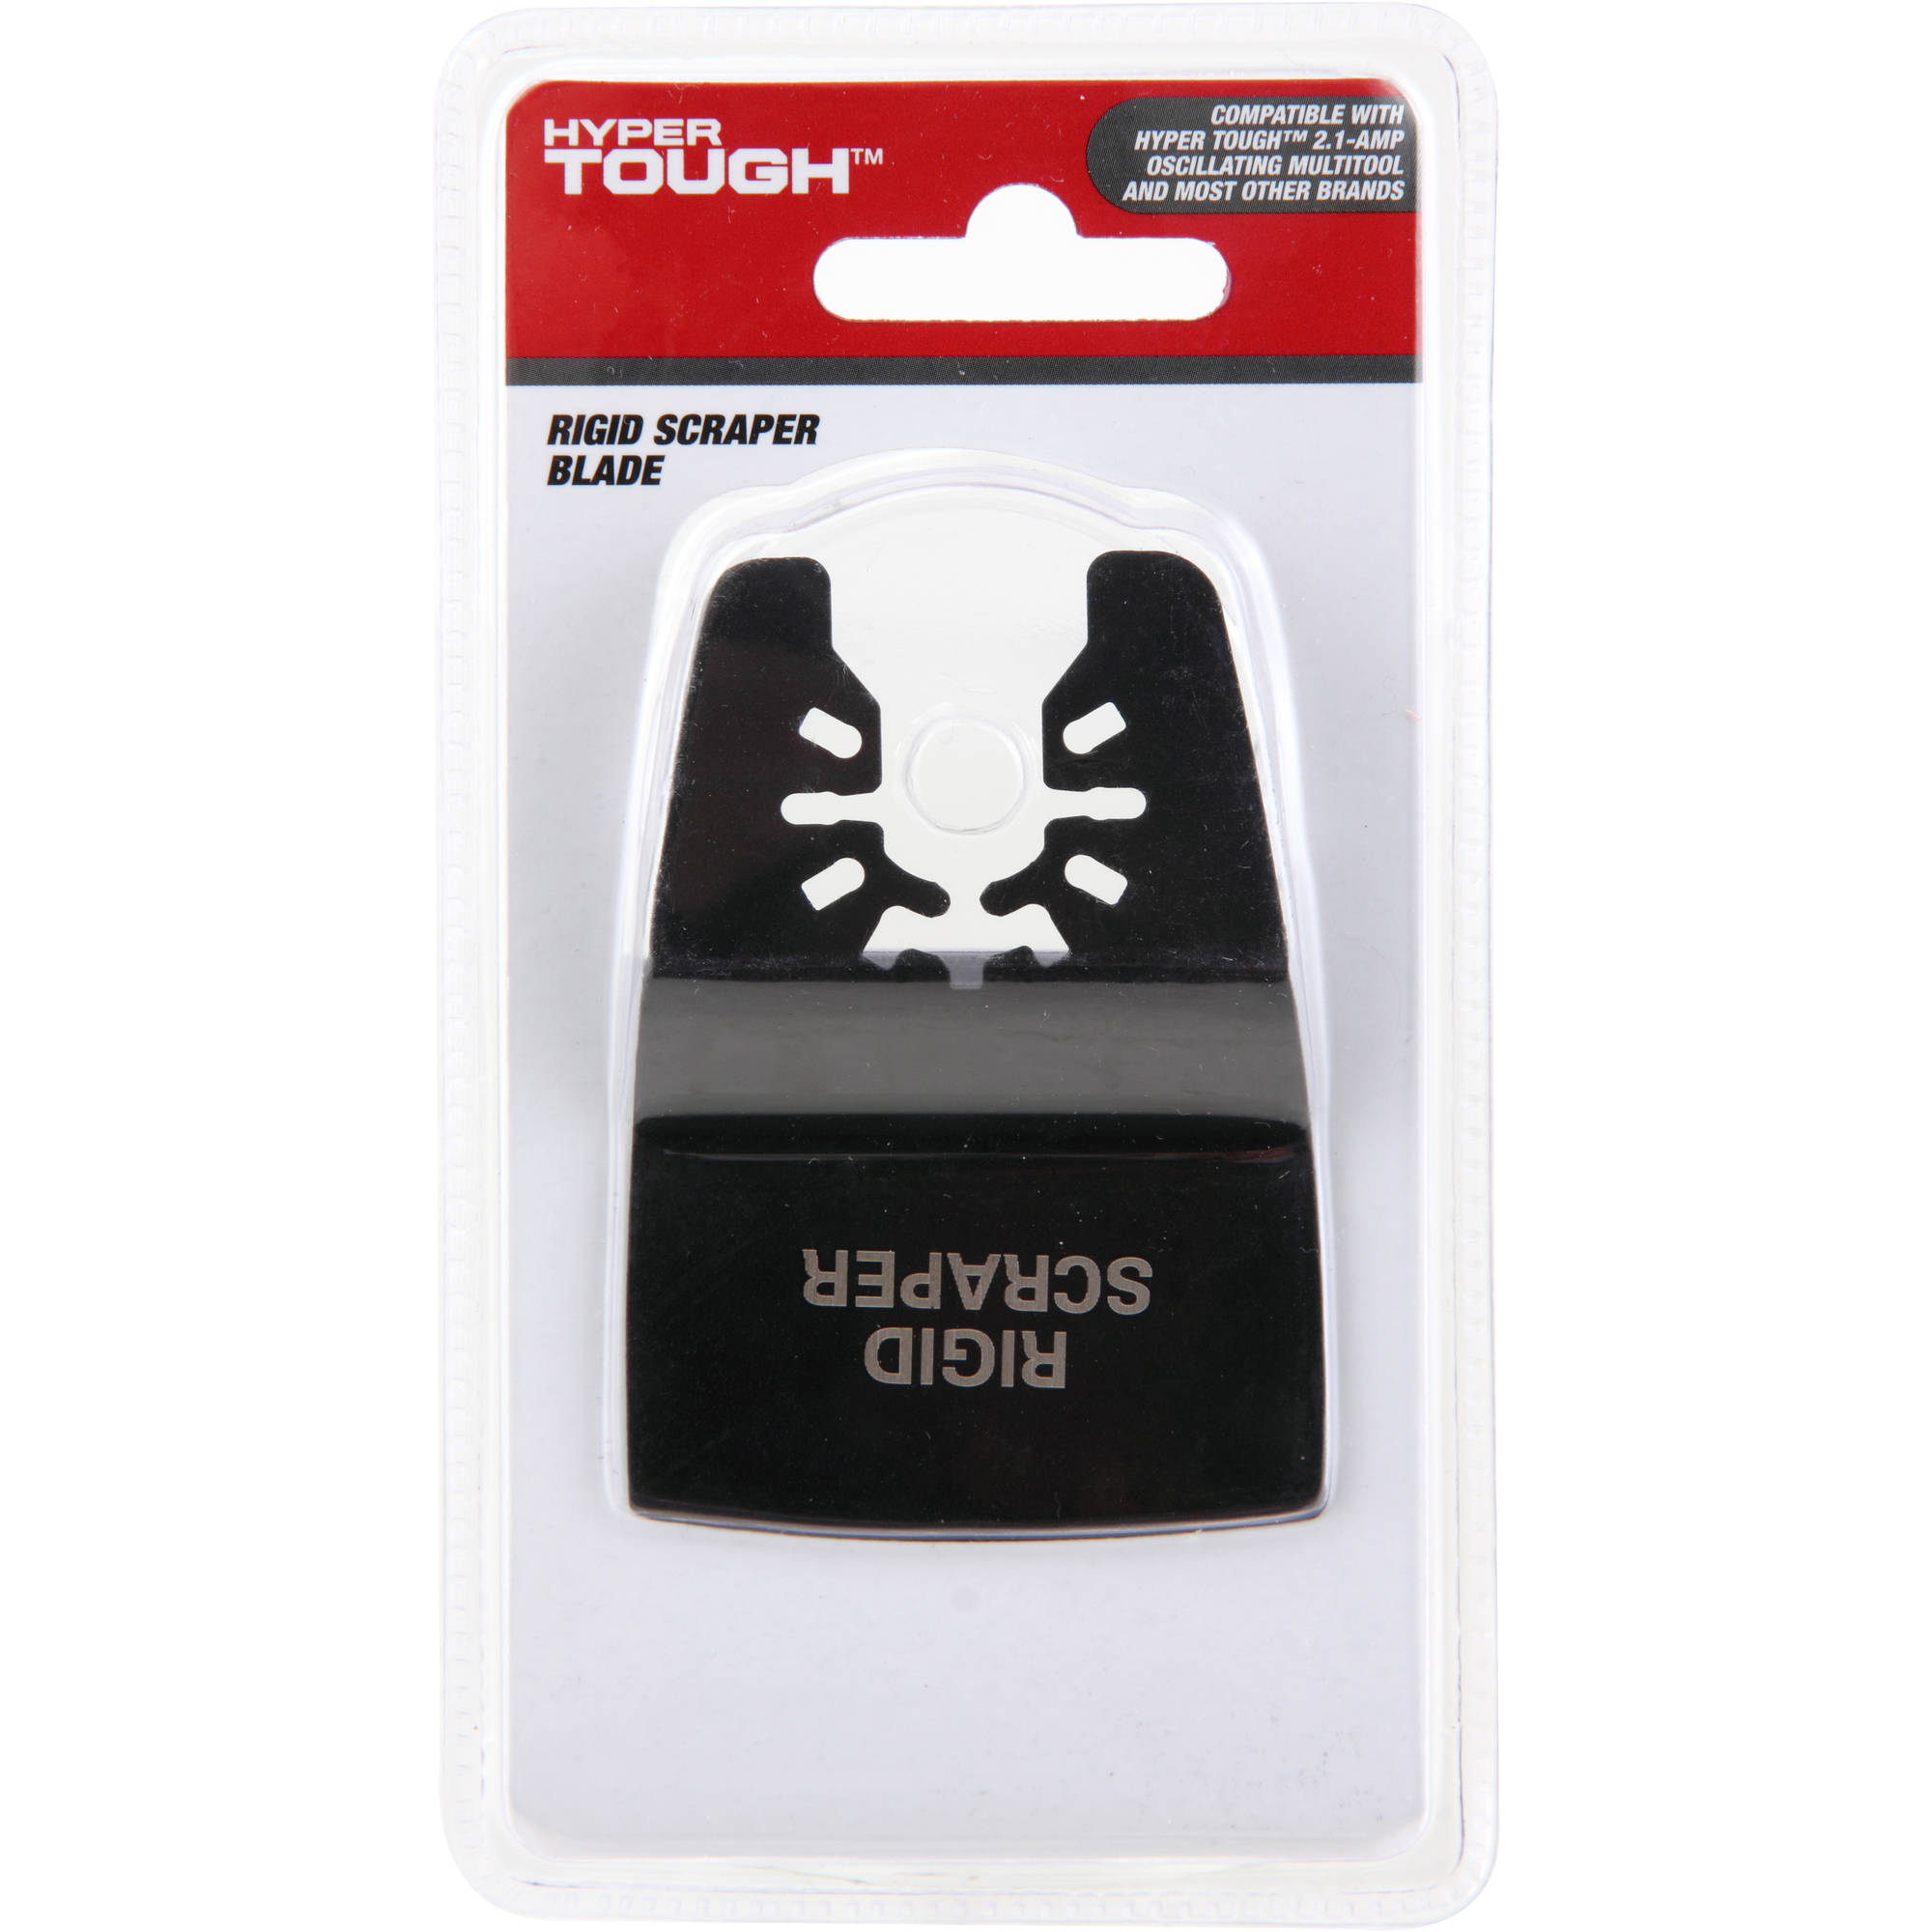 "Hyper Tough 2"" Rigid Scraper Blade, Black"